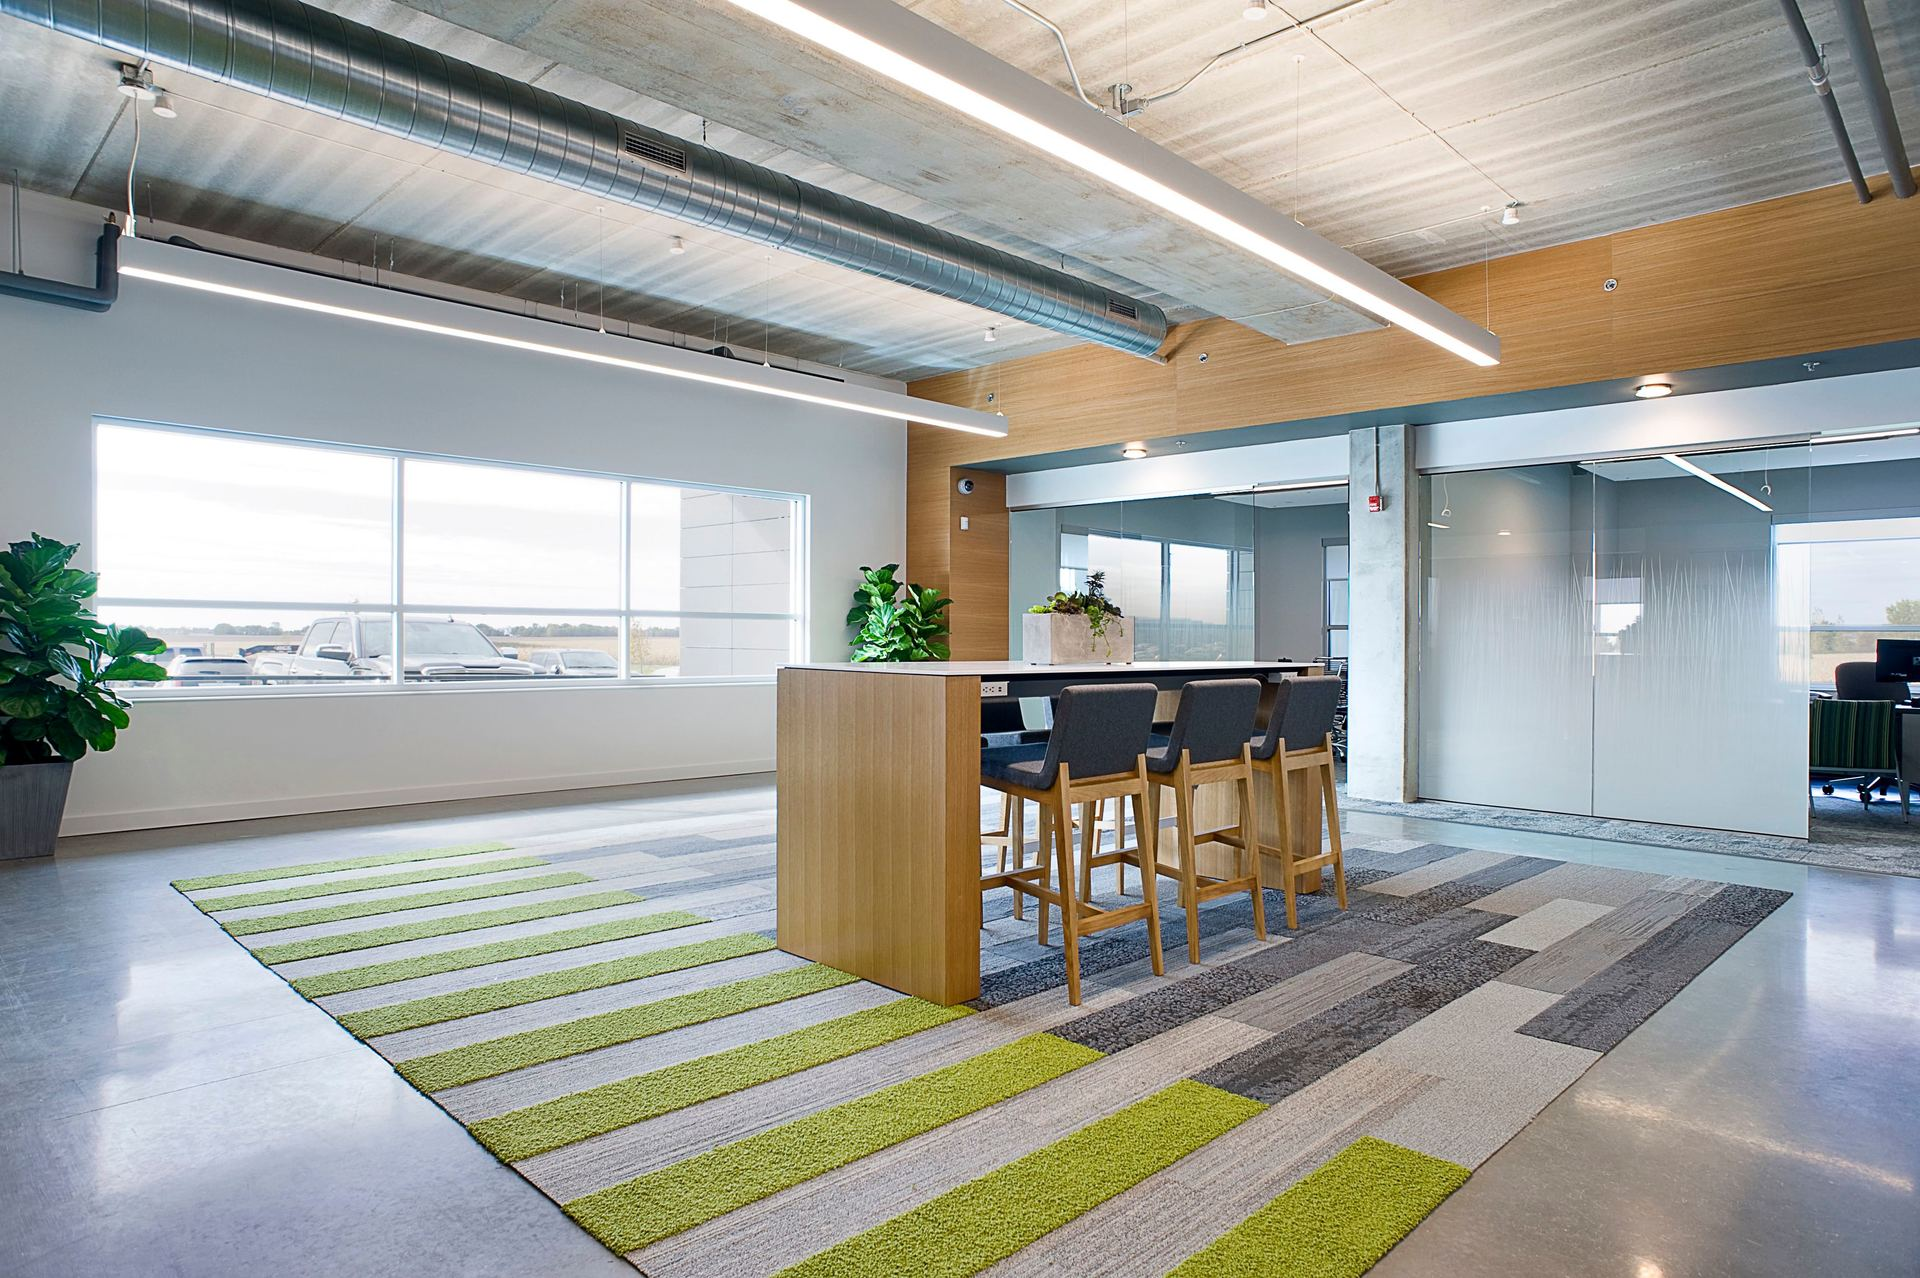 Open workspace is available for employees and clients of Reliabank Mortgage in Sioux Falls, South Dakota. Lenae Design kept the space clean and modern.